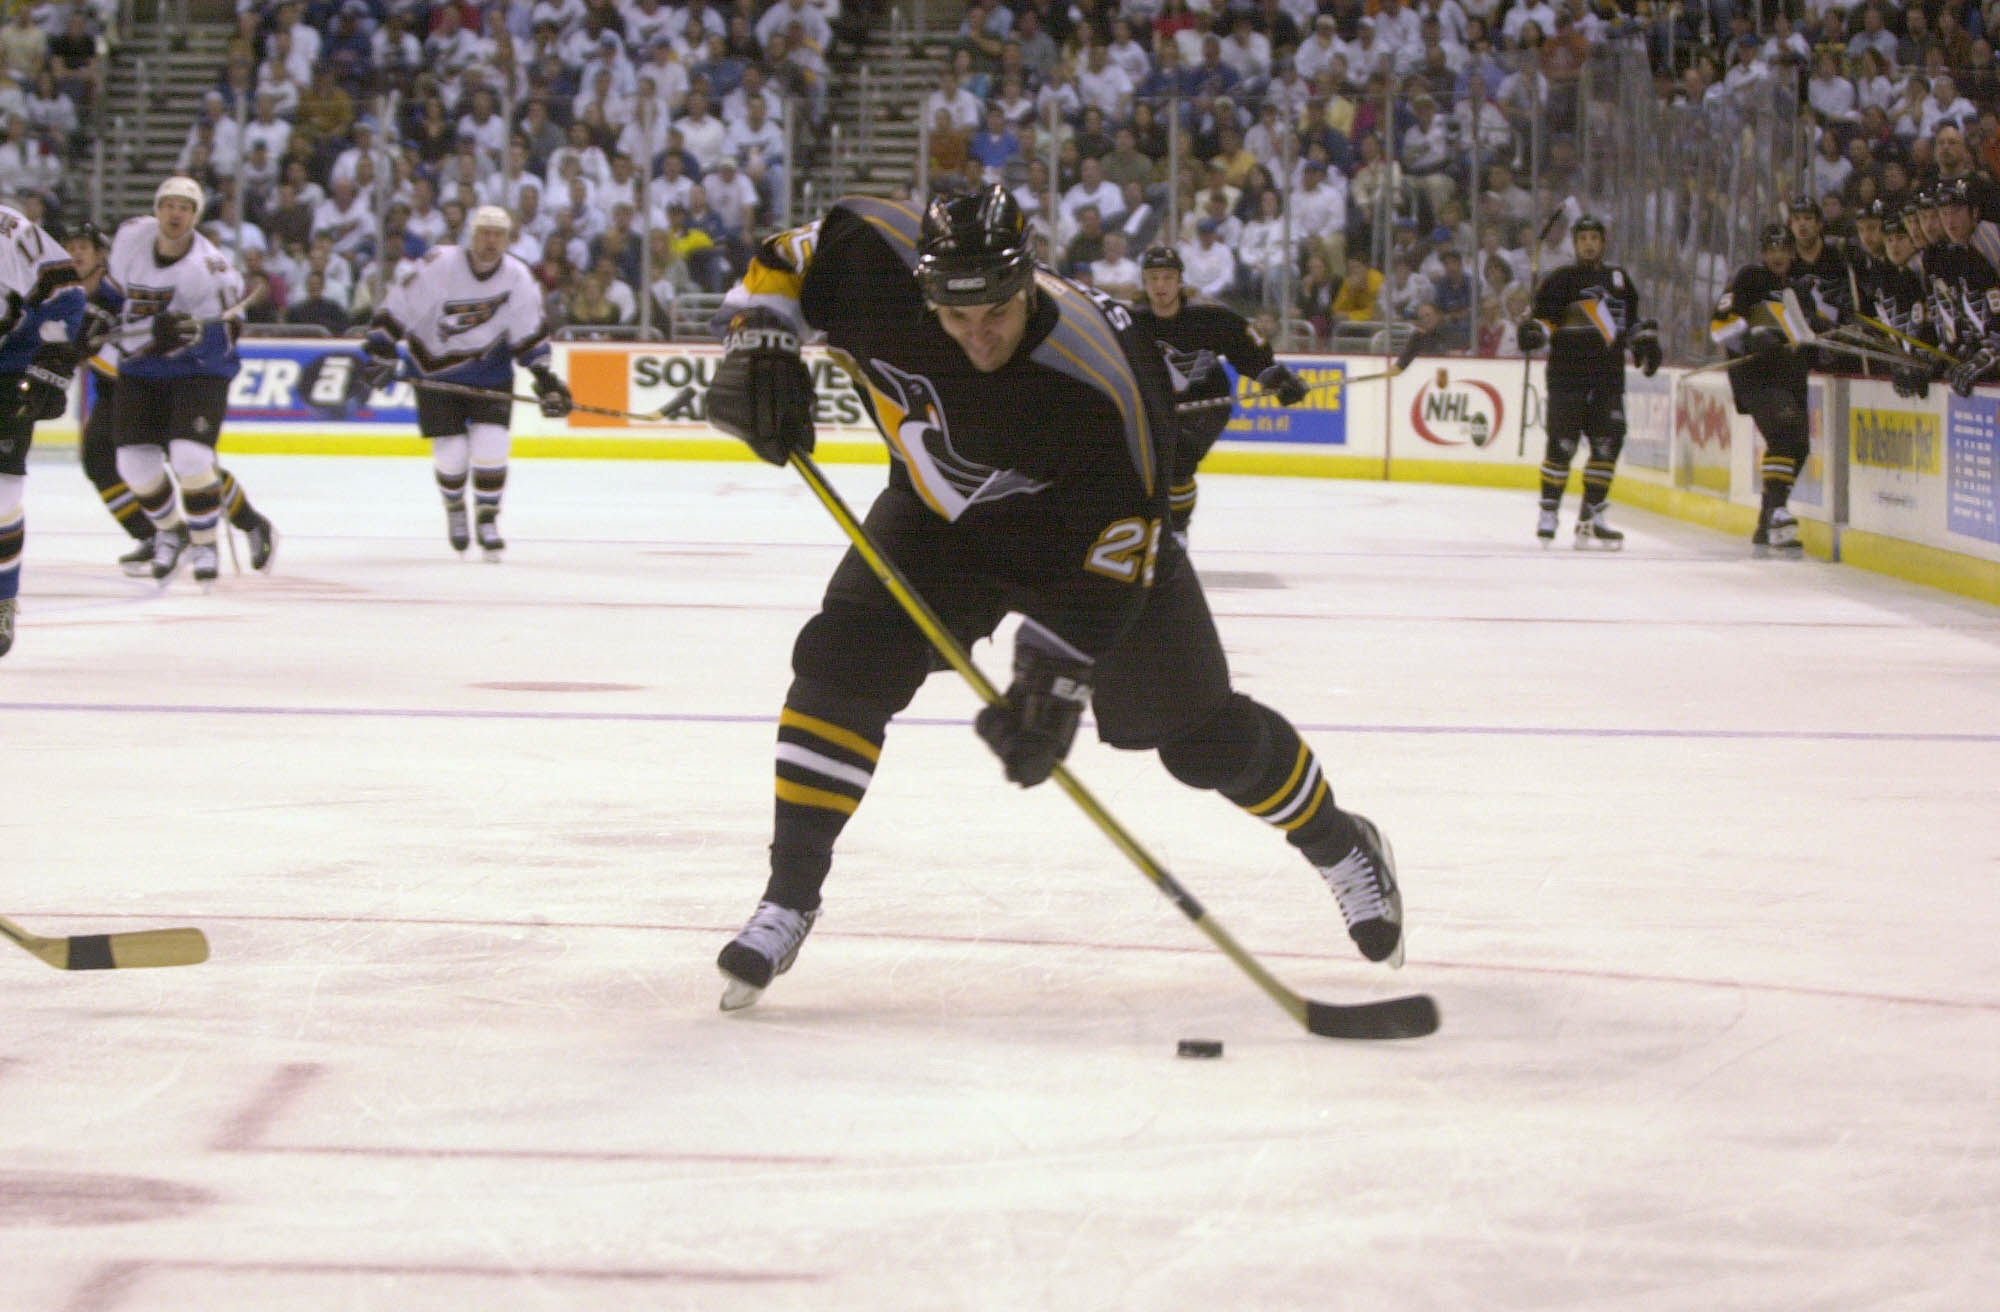 21 Apr 2001 : Kevin Stevens #25 of the Pittsburgh Penguins takes a shot against the Washington Capitals during Game 5 of the Eastern Conference Quarterfinals of the Stanley Cup Playoffs at MCI Center in Washington, DC . The Penguins defeat the Capitals 2-